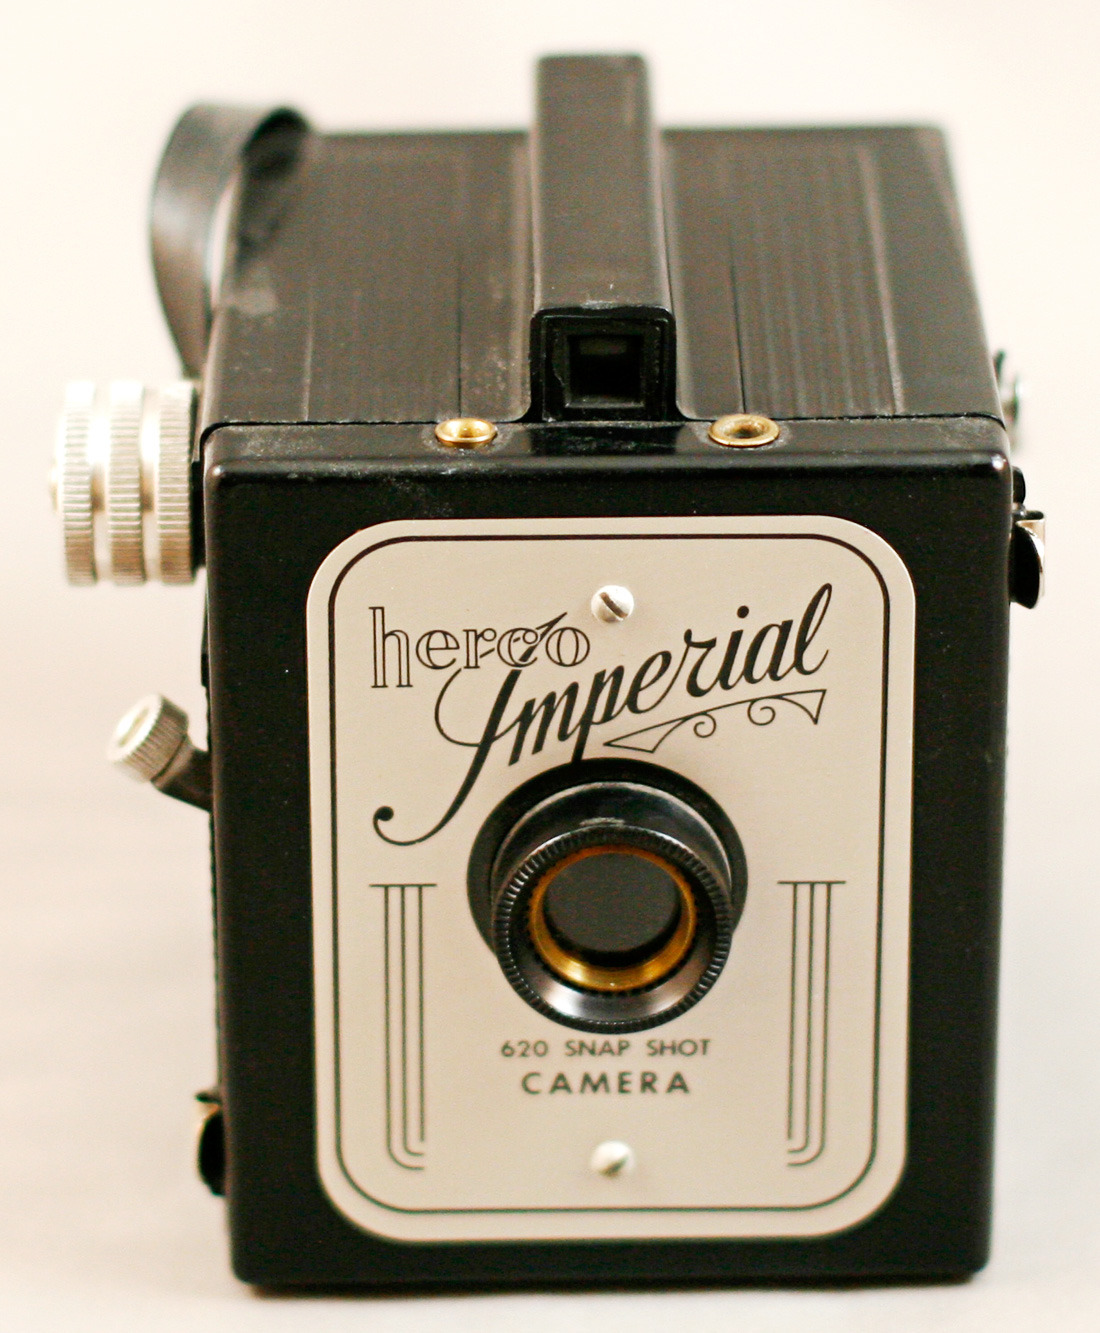 Imperial Herco 620 snapshot toy camera An antique-mall gem, which I used to kick off writing about the many cameras in my collection.